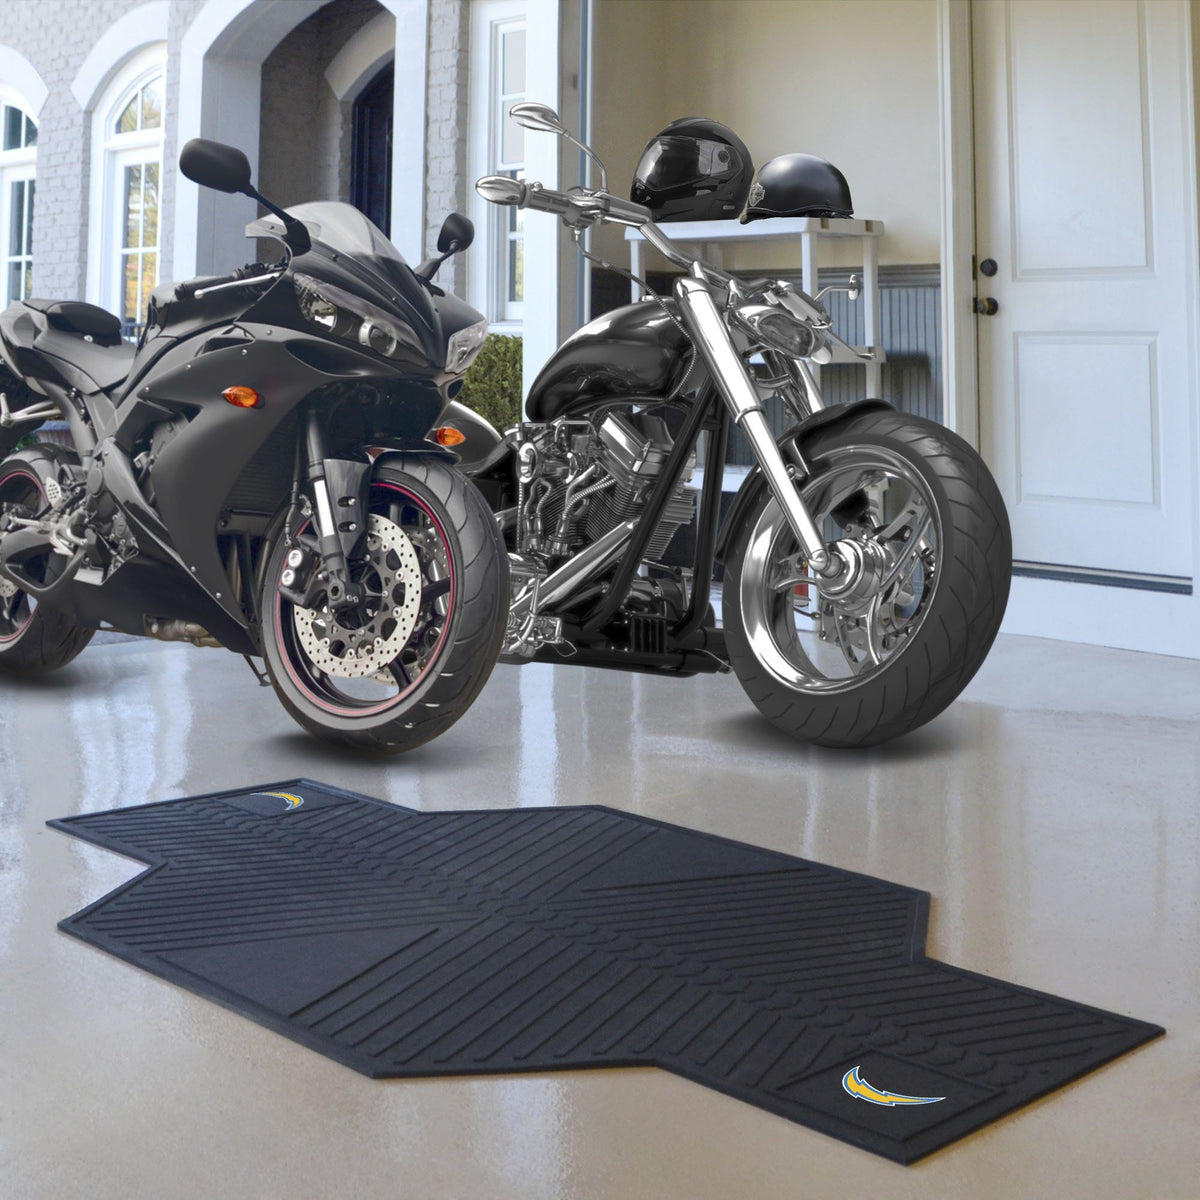 "NFL - Motorcycle Mat, 82.5"" x 42"" NFL Mats, Motorcycle Accessory, Motorcycle Mat, NFL, Auto Fan Mats Los Angeles Chargers"